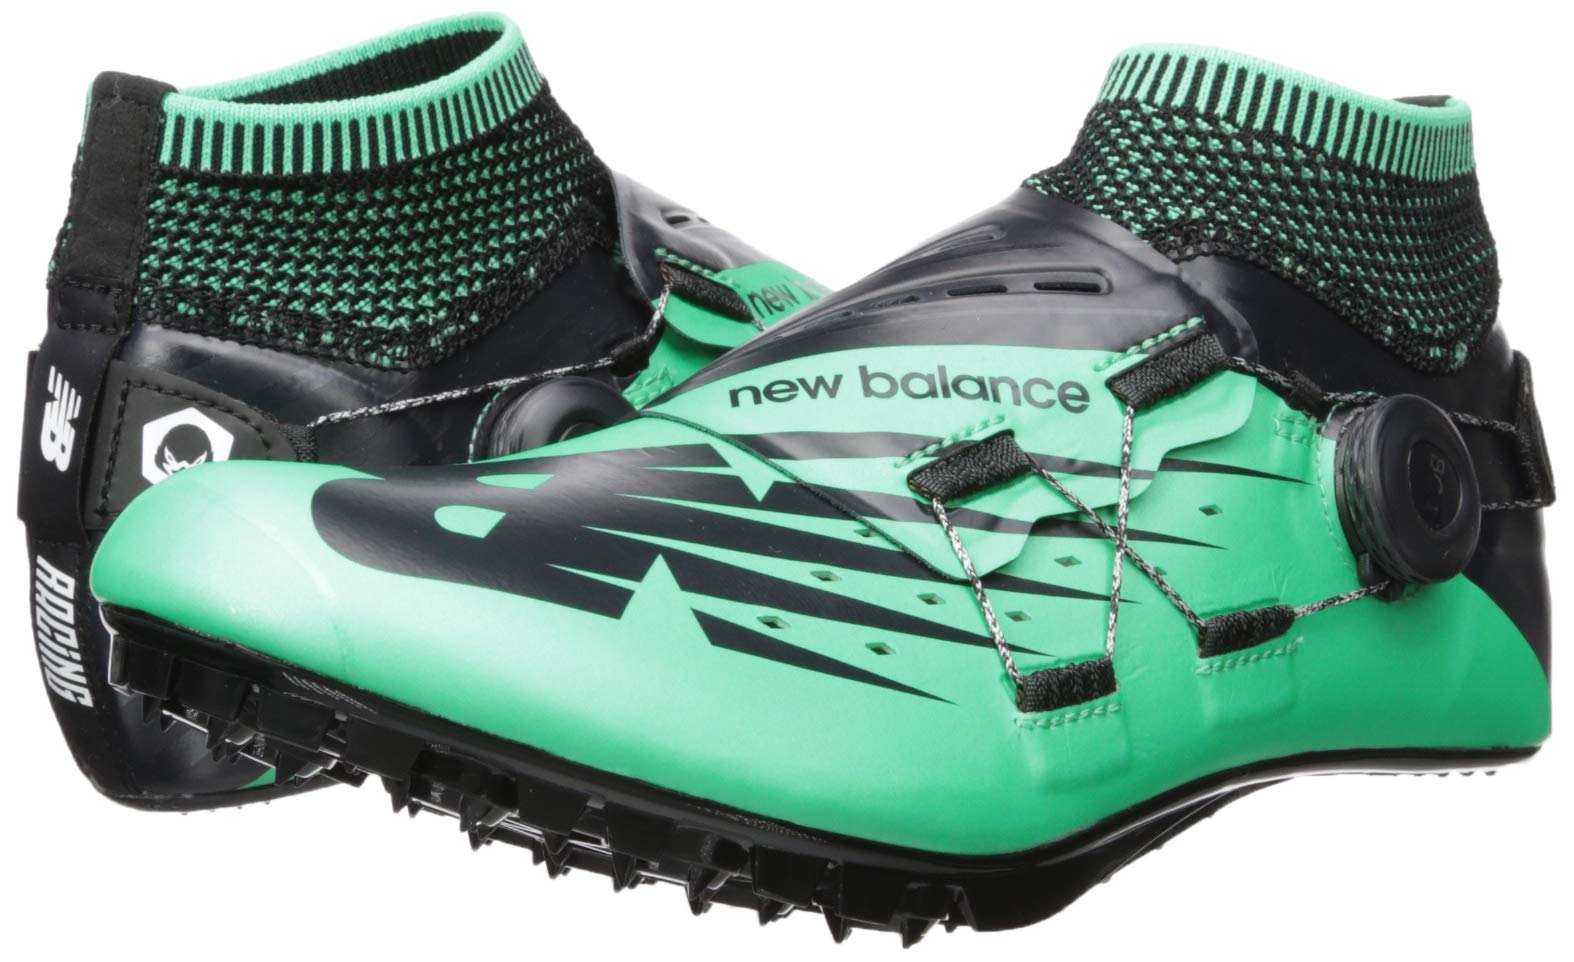 New Balance Men's Sigma V2 Vazee Track Shoe neon Emerald/Black 6 D US by New Balance (Image #6)